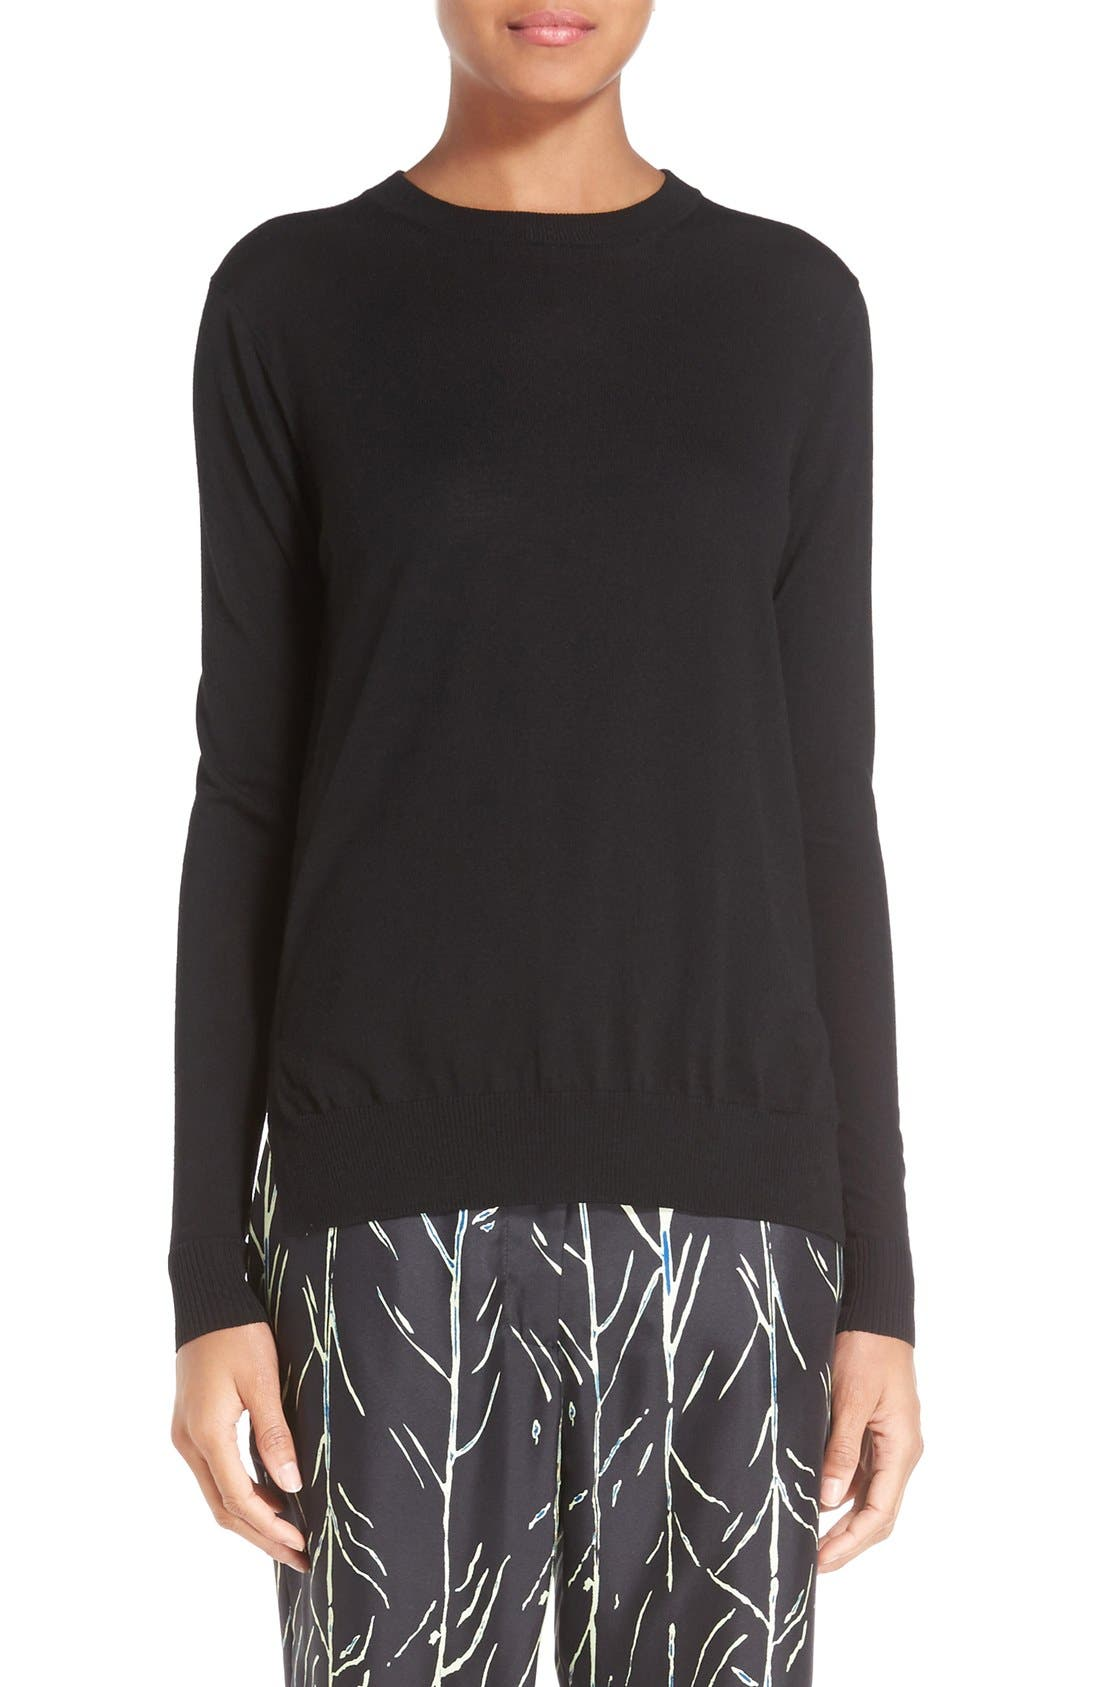 Proenza Schouler Superfine Merino Wool Sweater